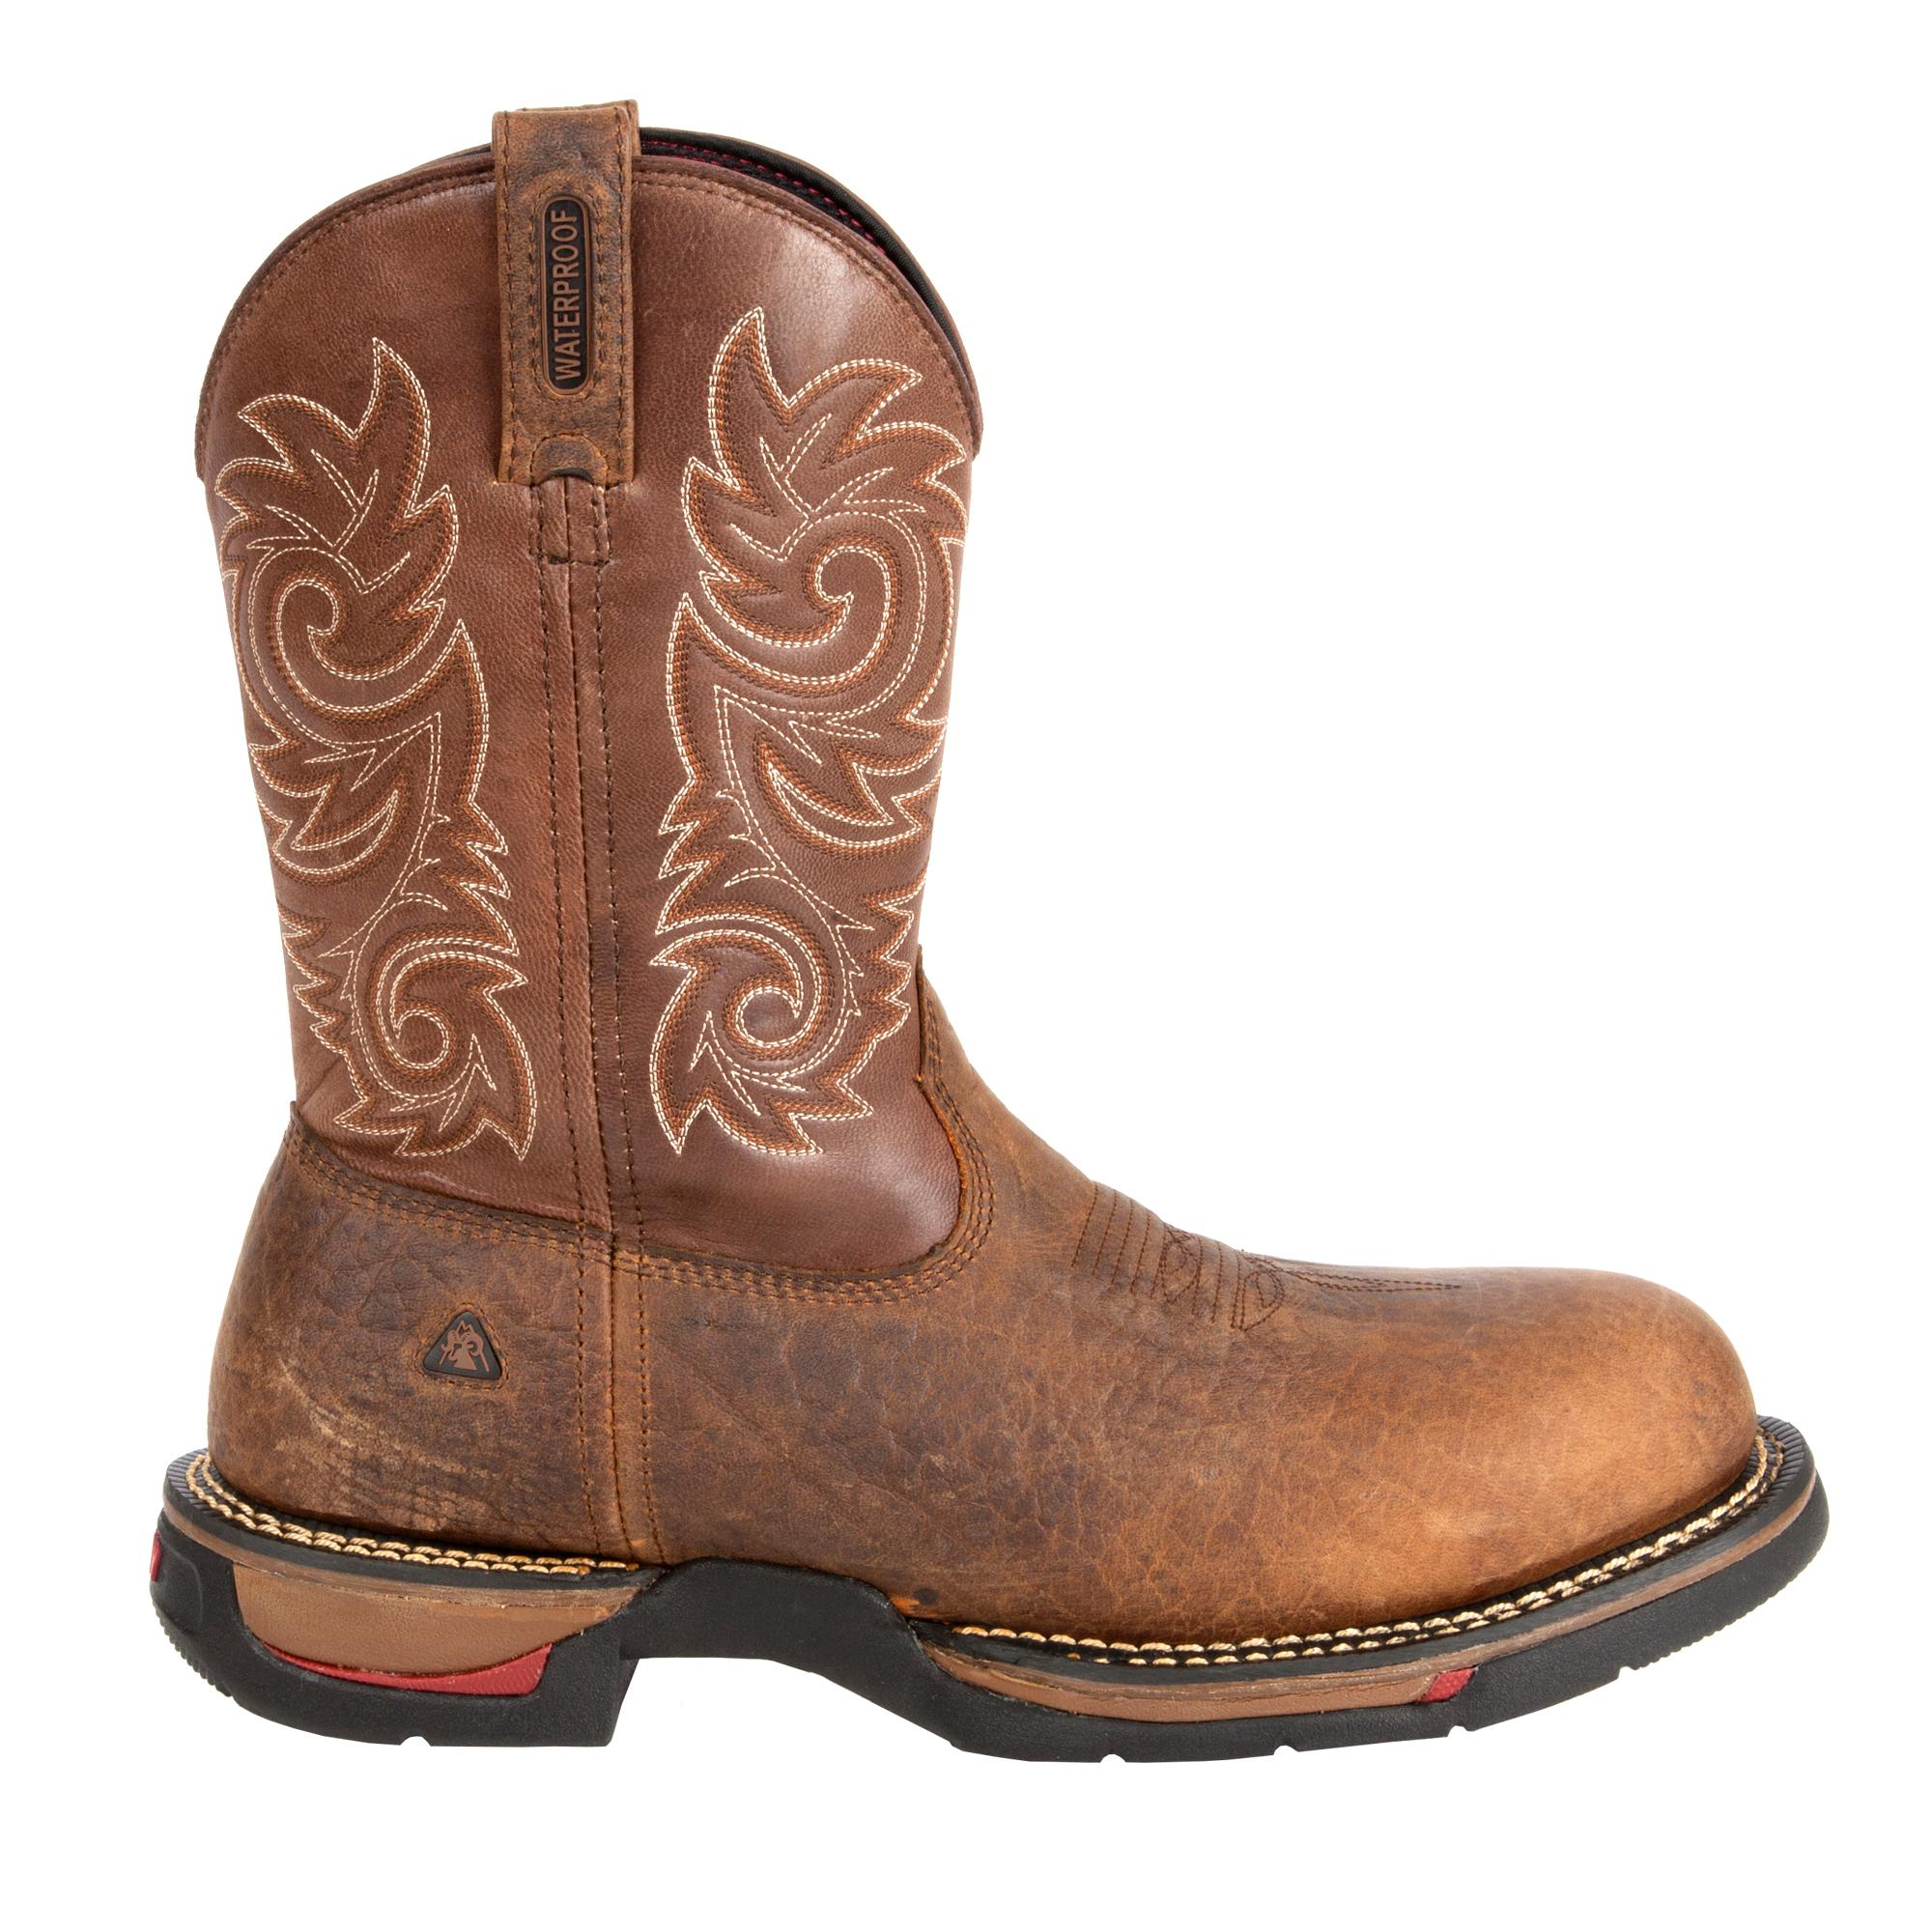 RW025 Rocky Long Range Waterproof Carbon-Fiber Toe Western Work Boots